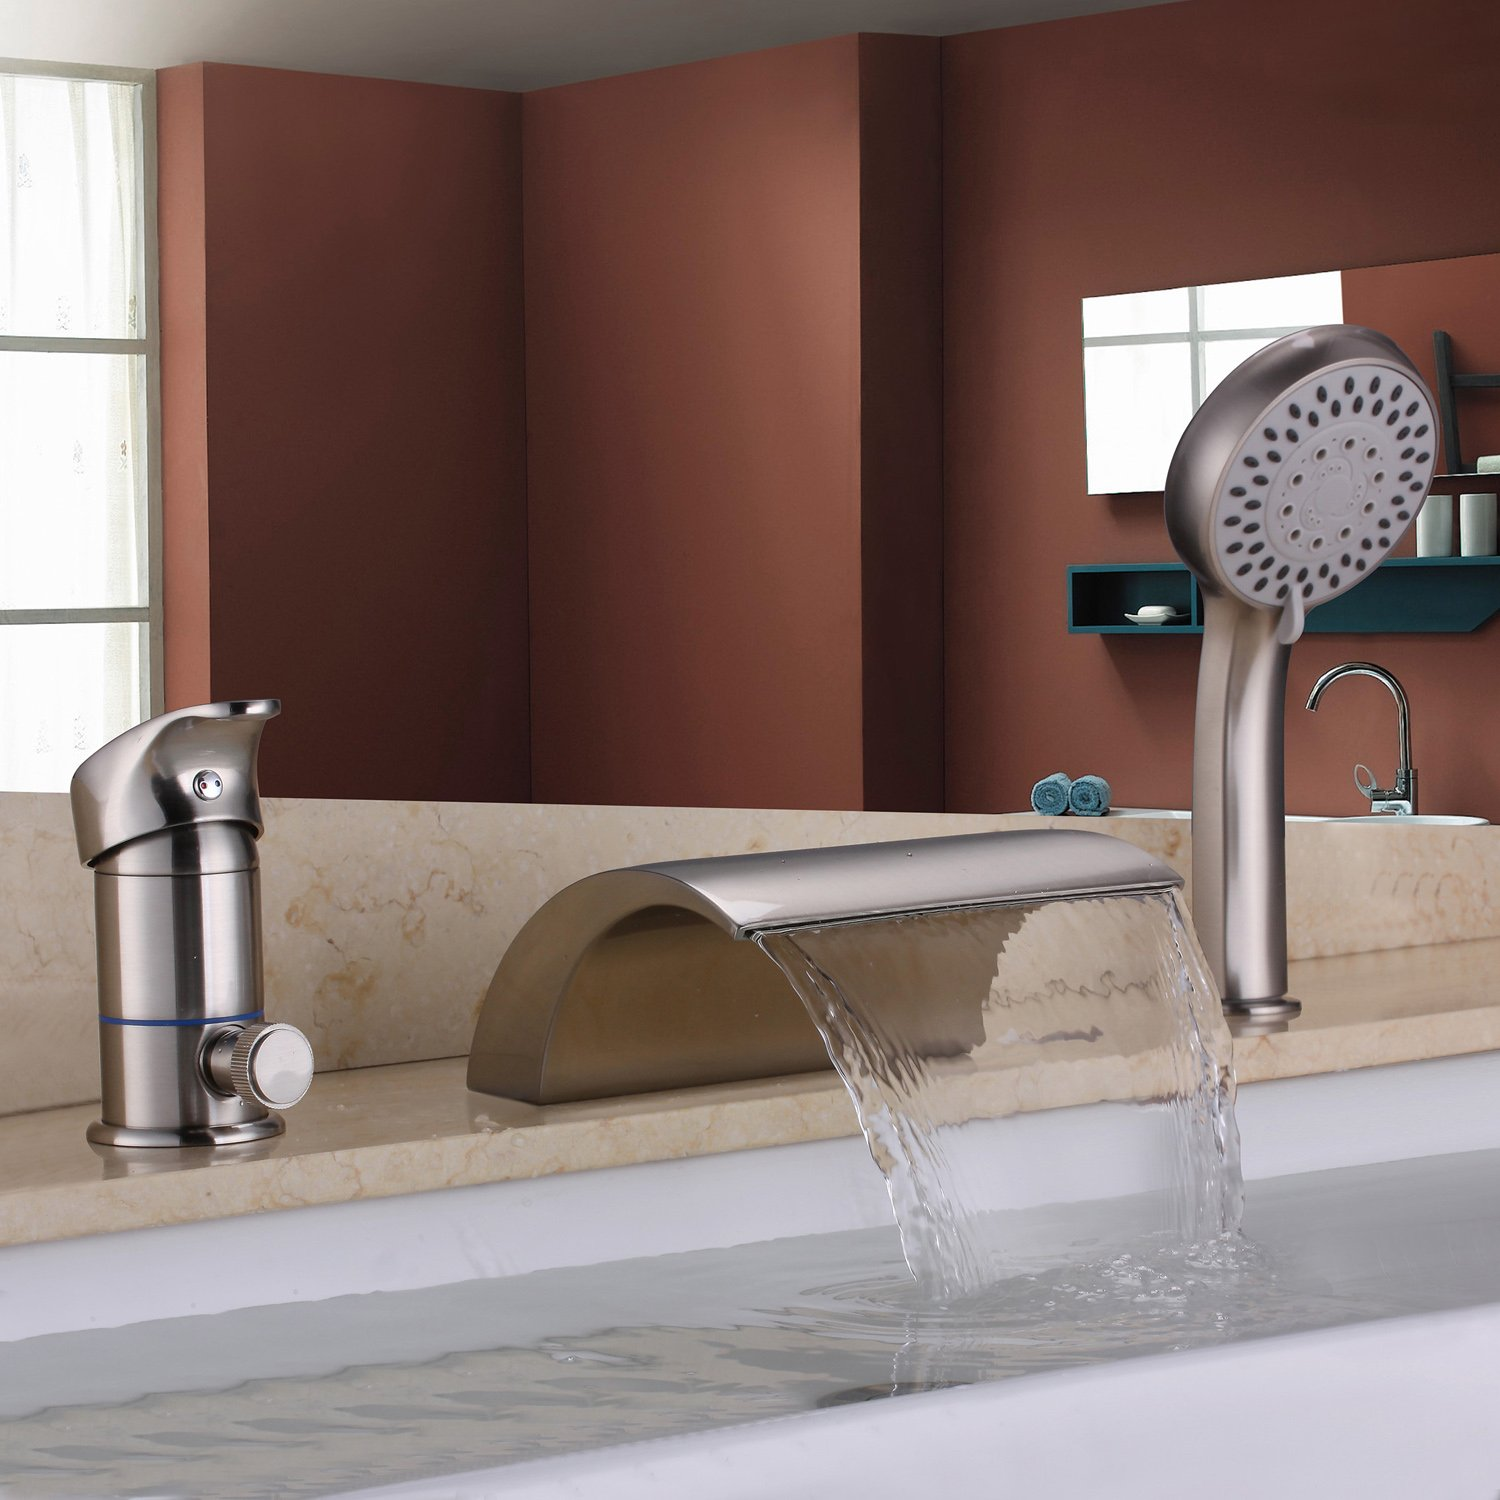 faucet one hole sink installation faucets in style rubbed single bathroom oil waterfall handle modern bronze